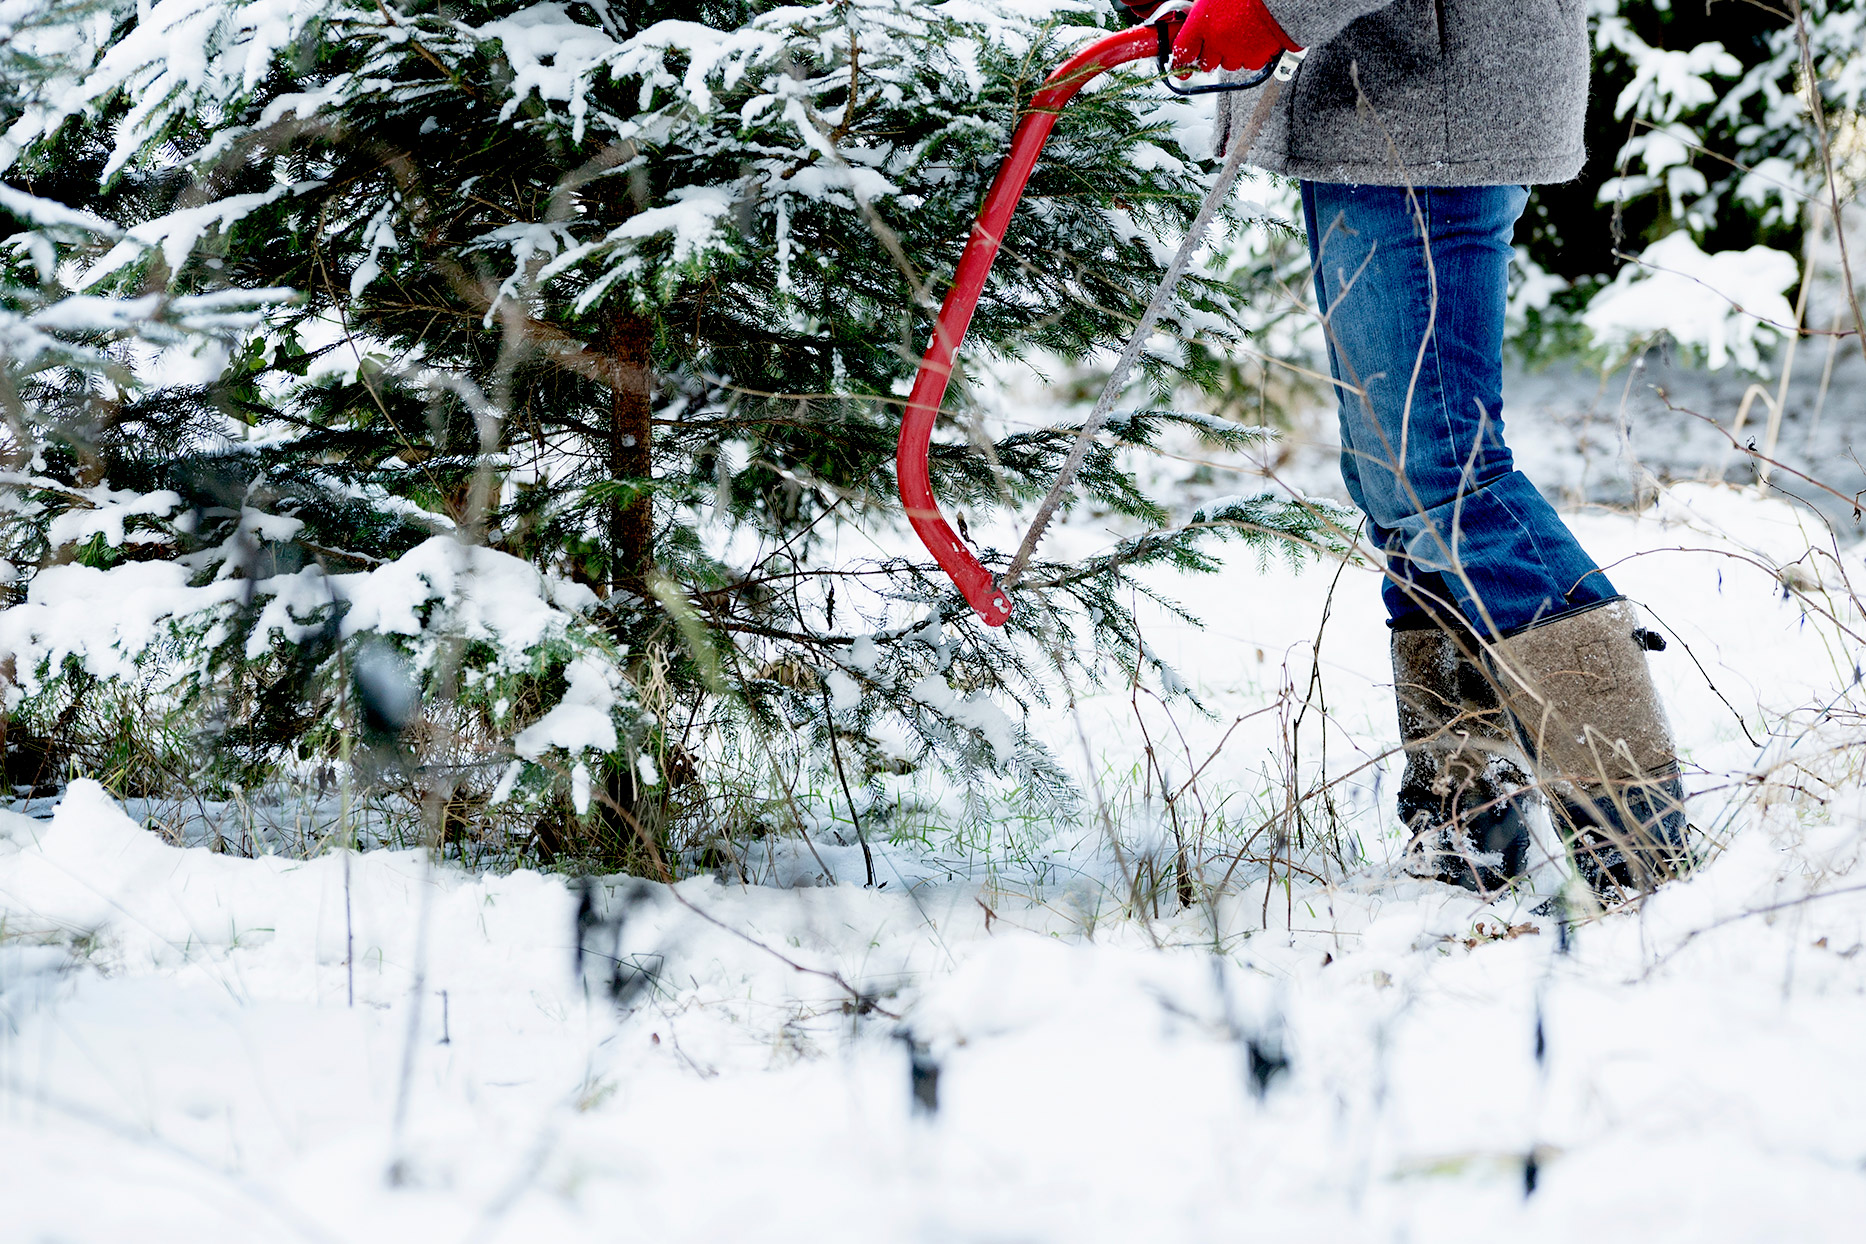 Person holding saw to cut down Christmas tree